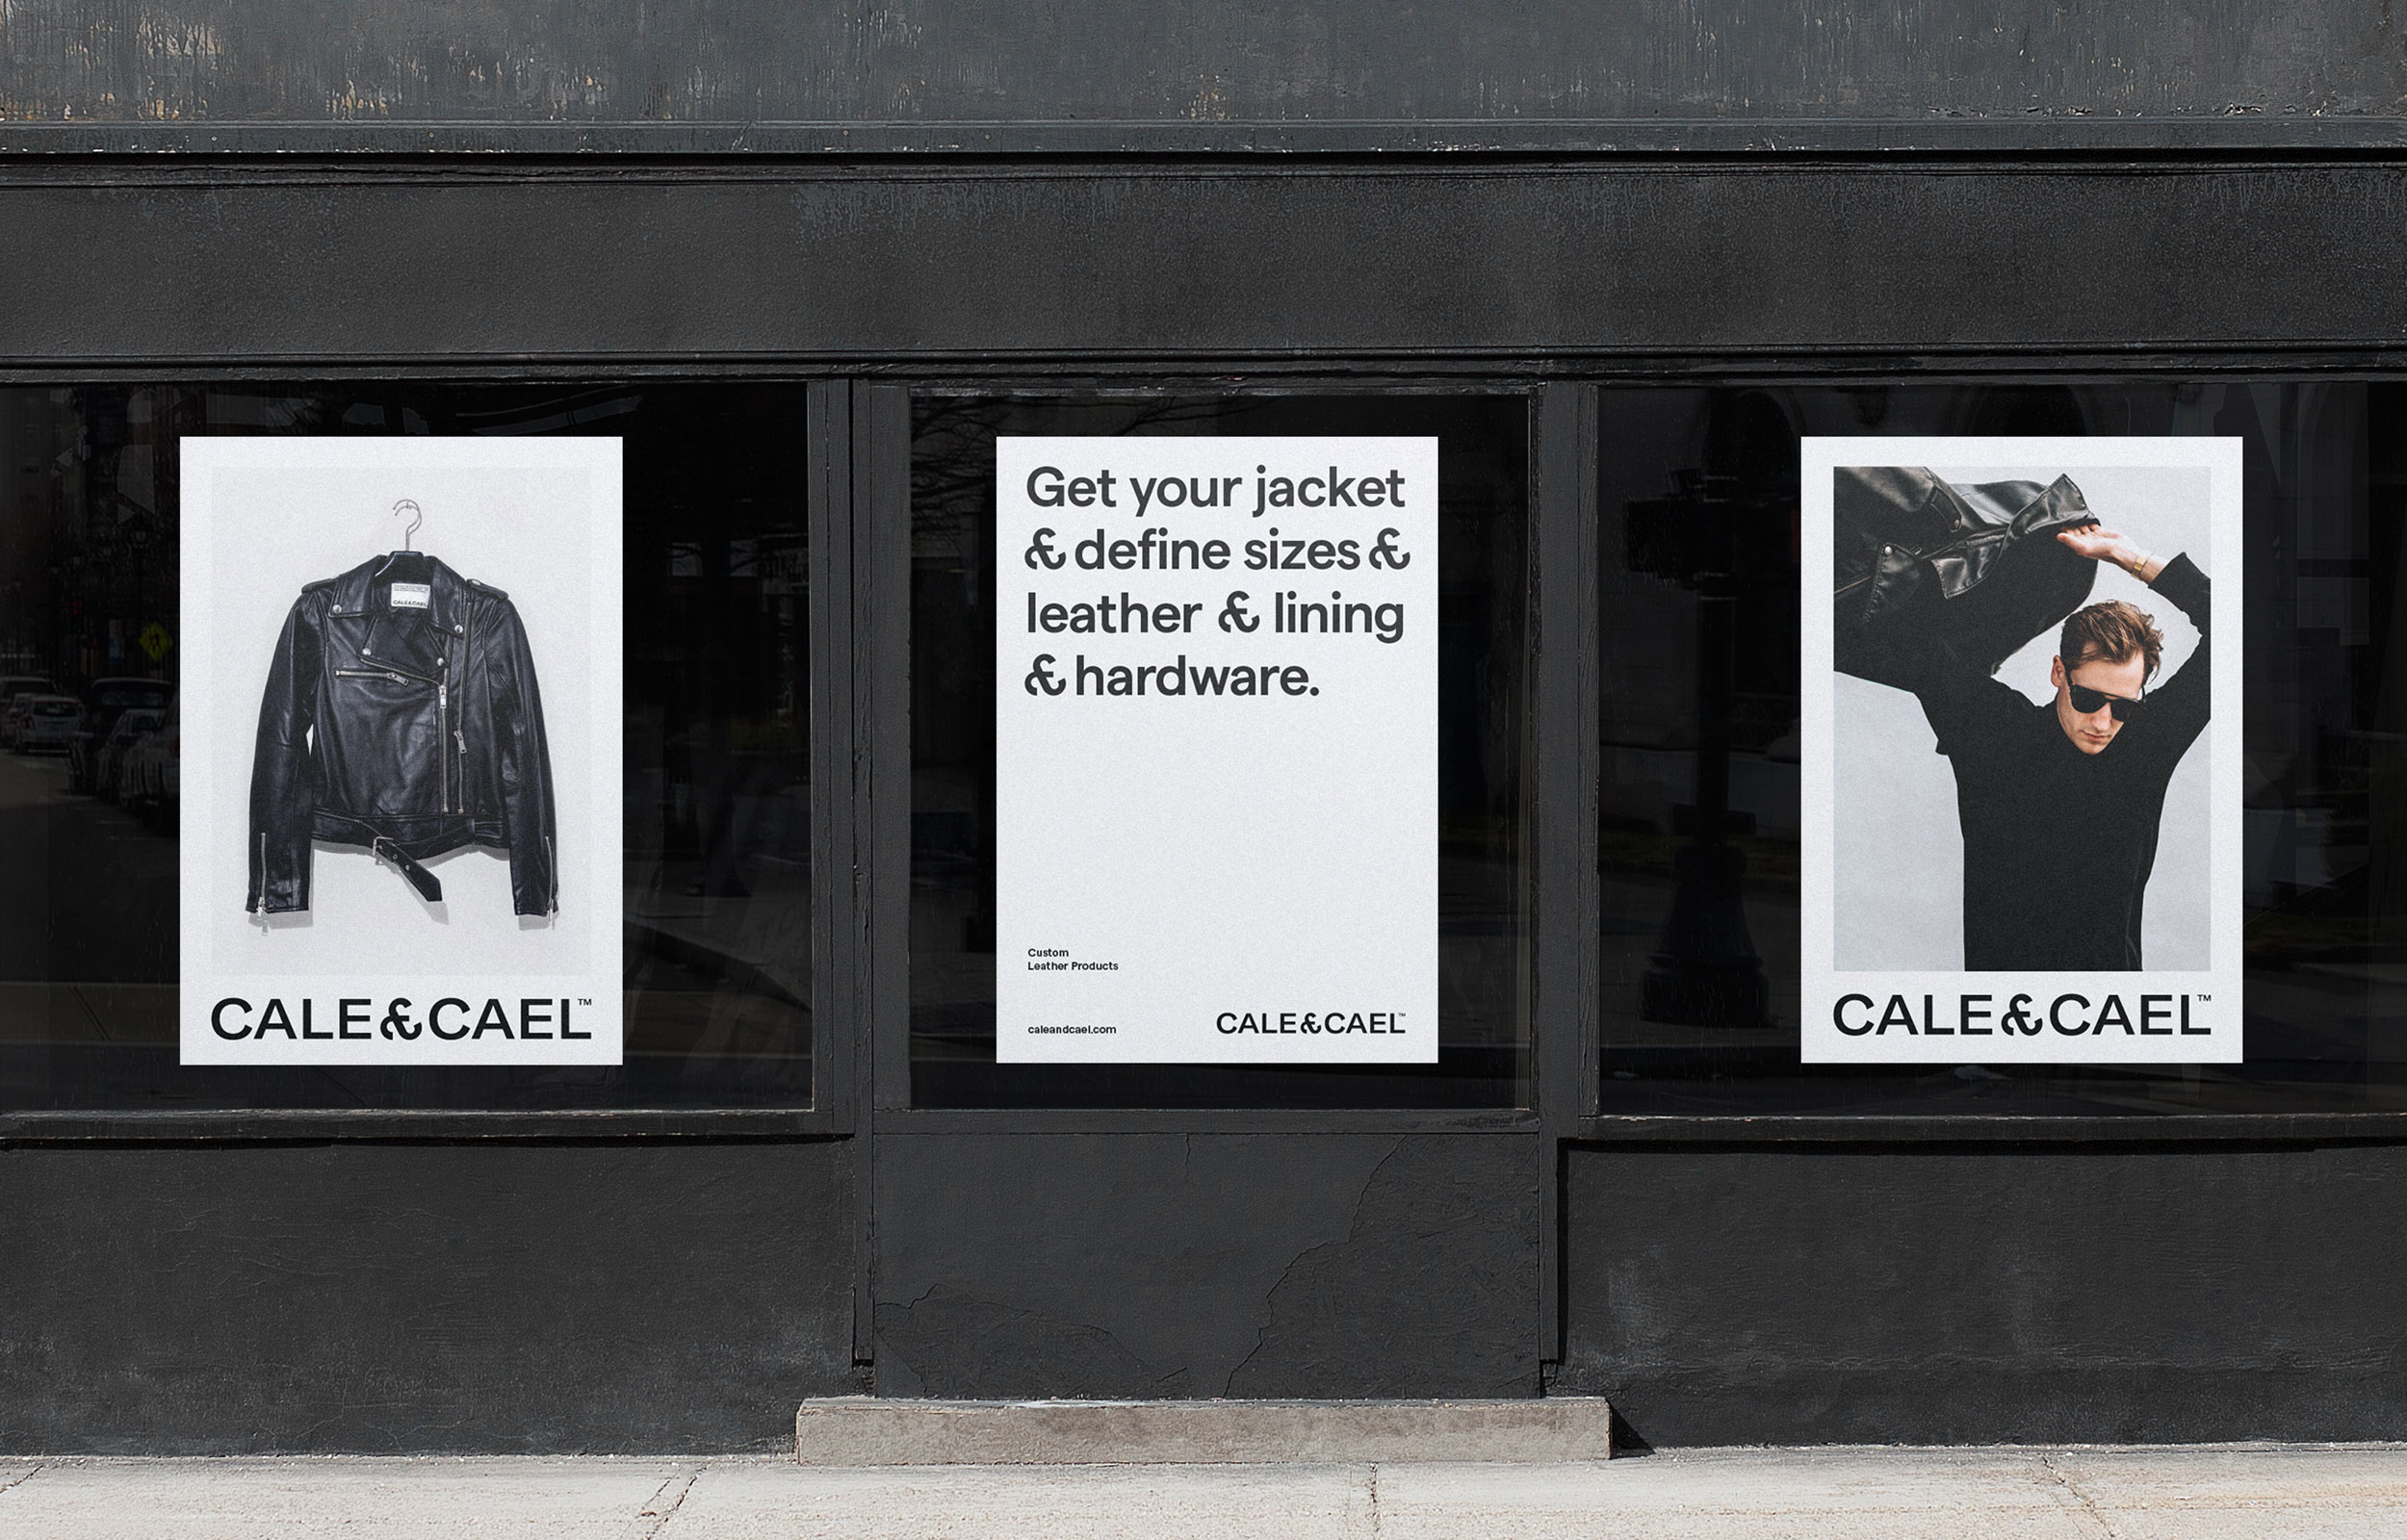 Diferente_Cale&Cael_Store_Poster